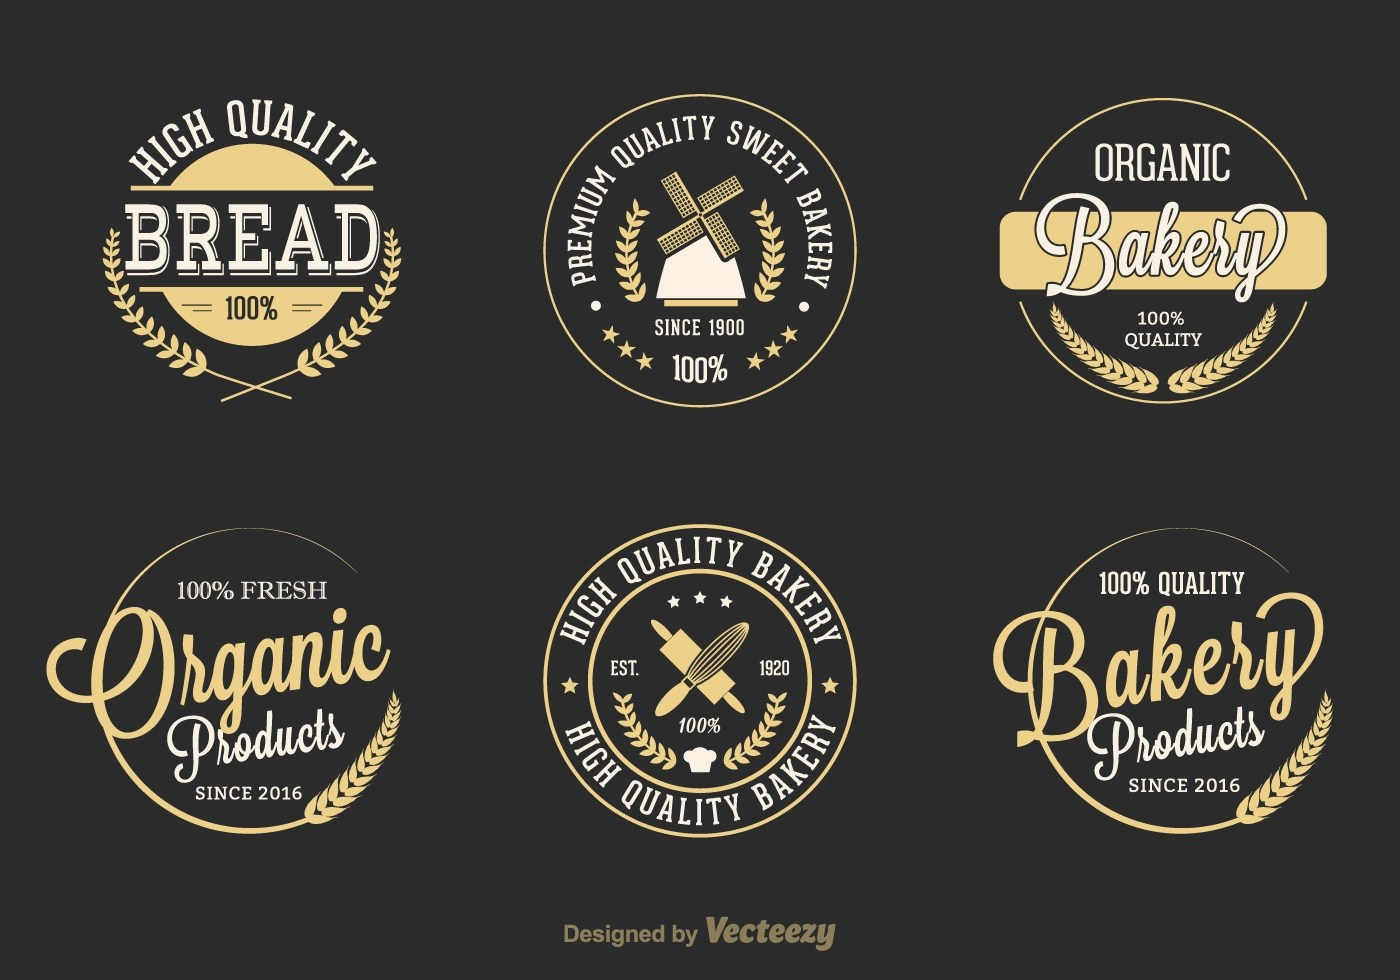 kitchen blackboard trash can size free retro bakery vector labels - download art ...